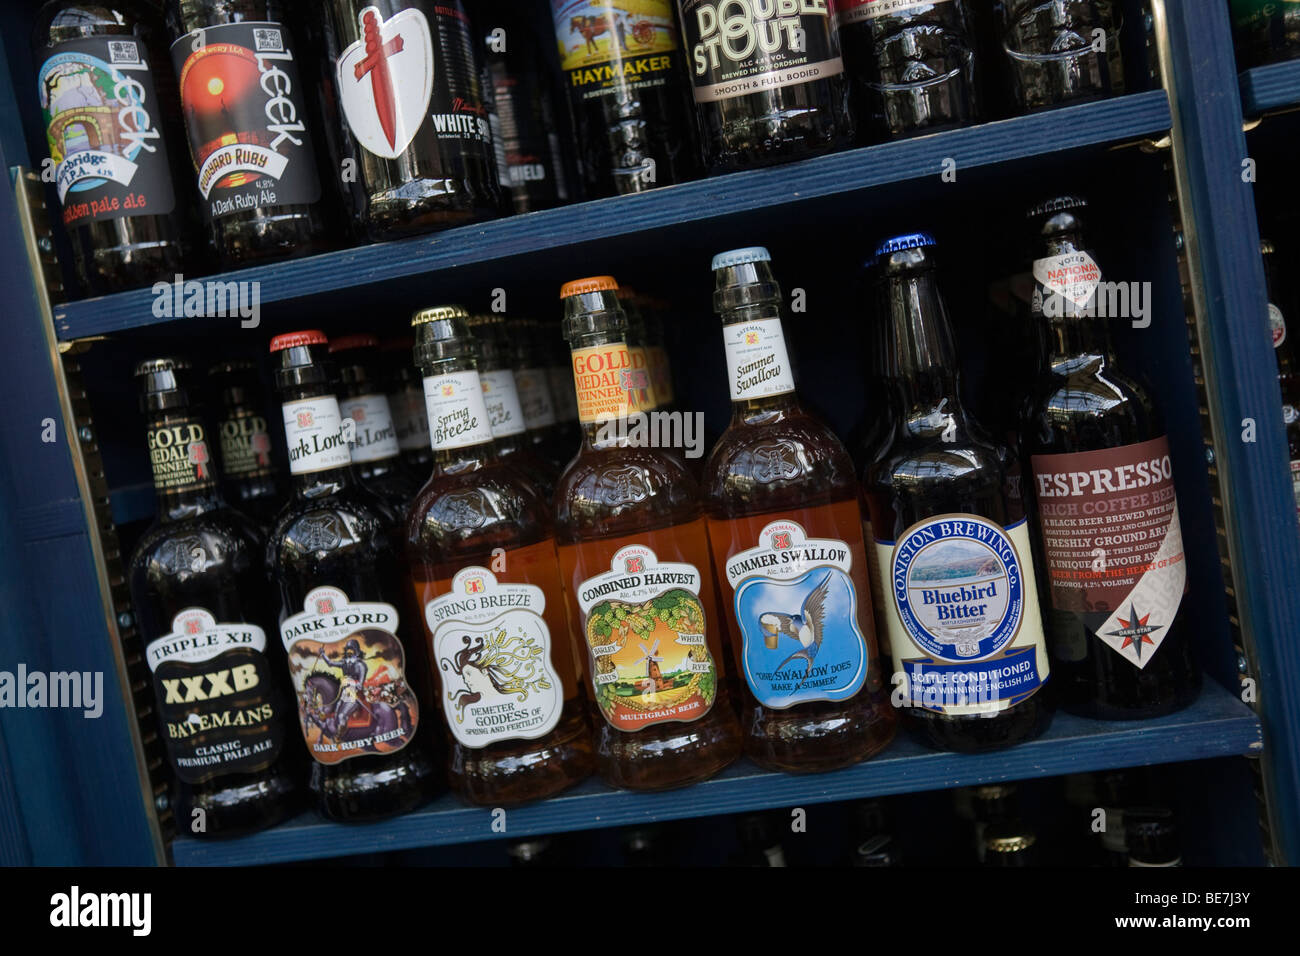 Shelf with bottles of beer from Micro breweries - Stock Image